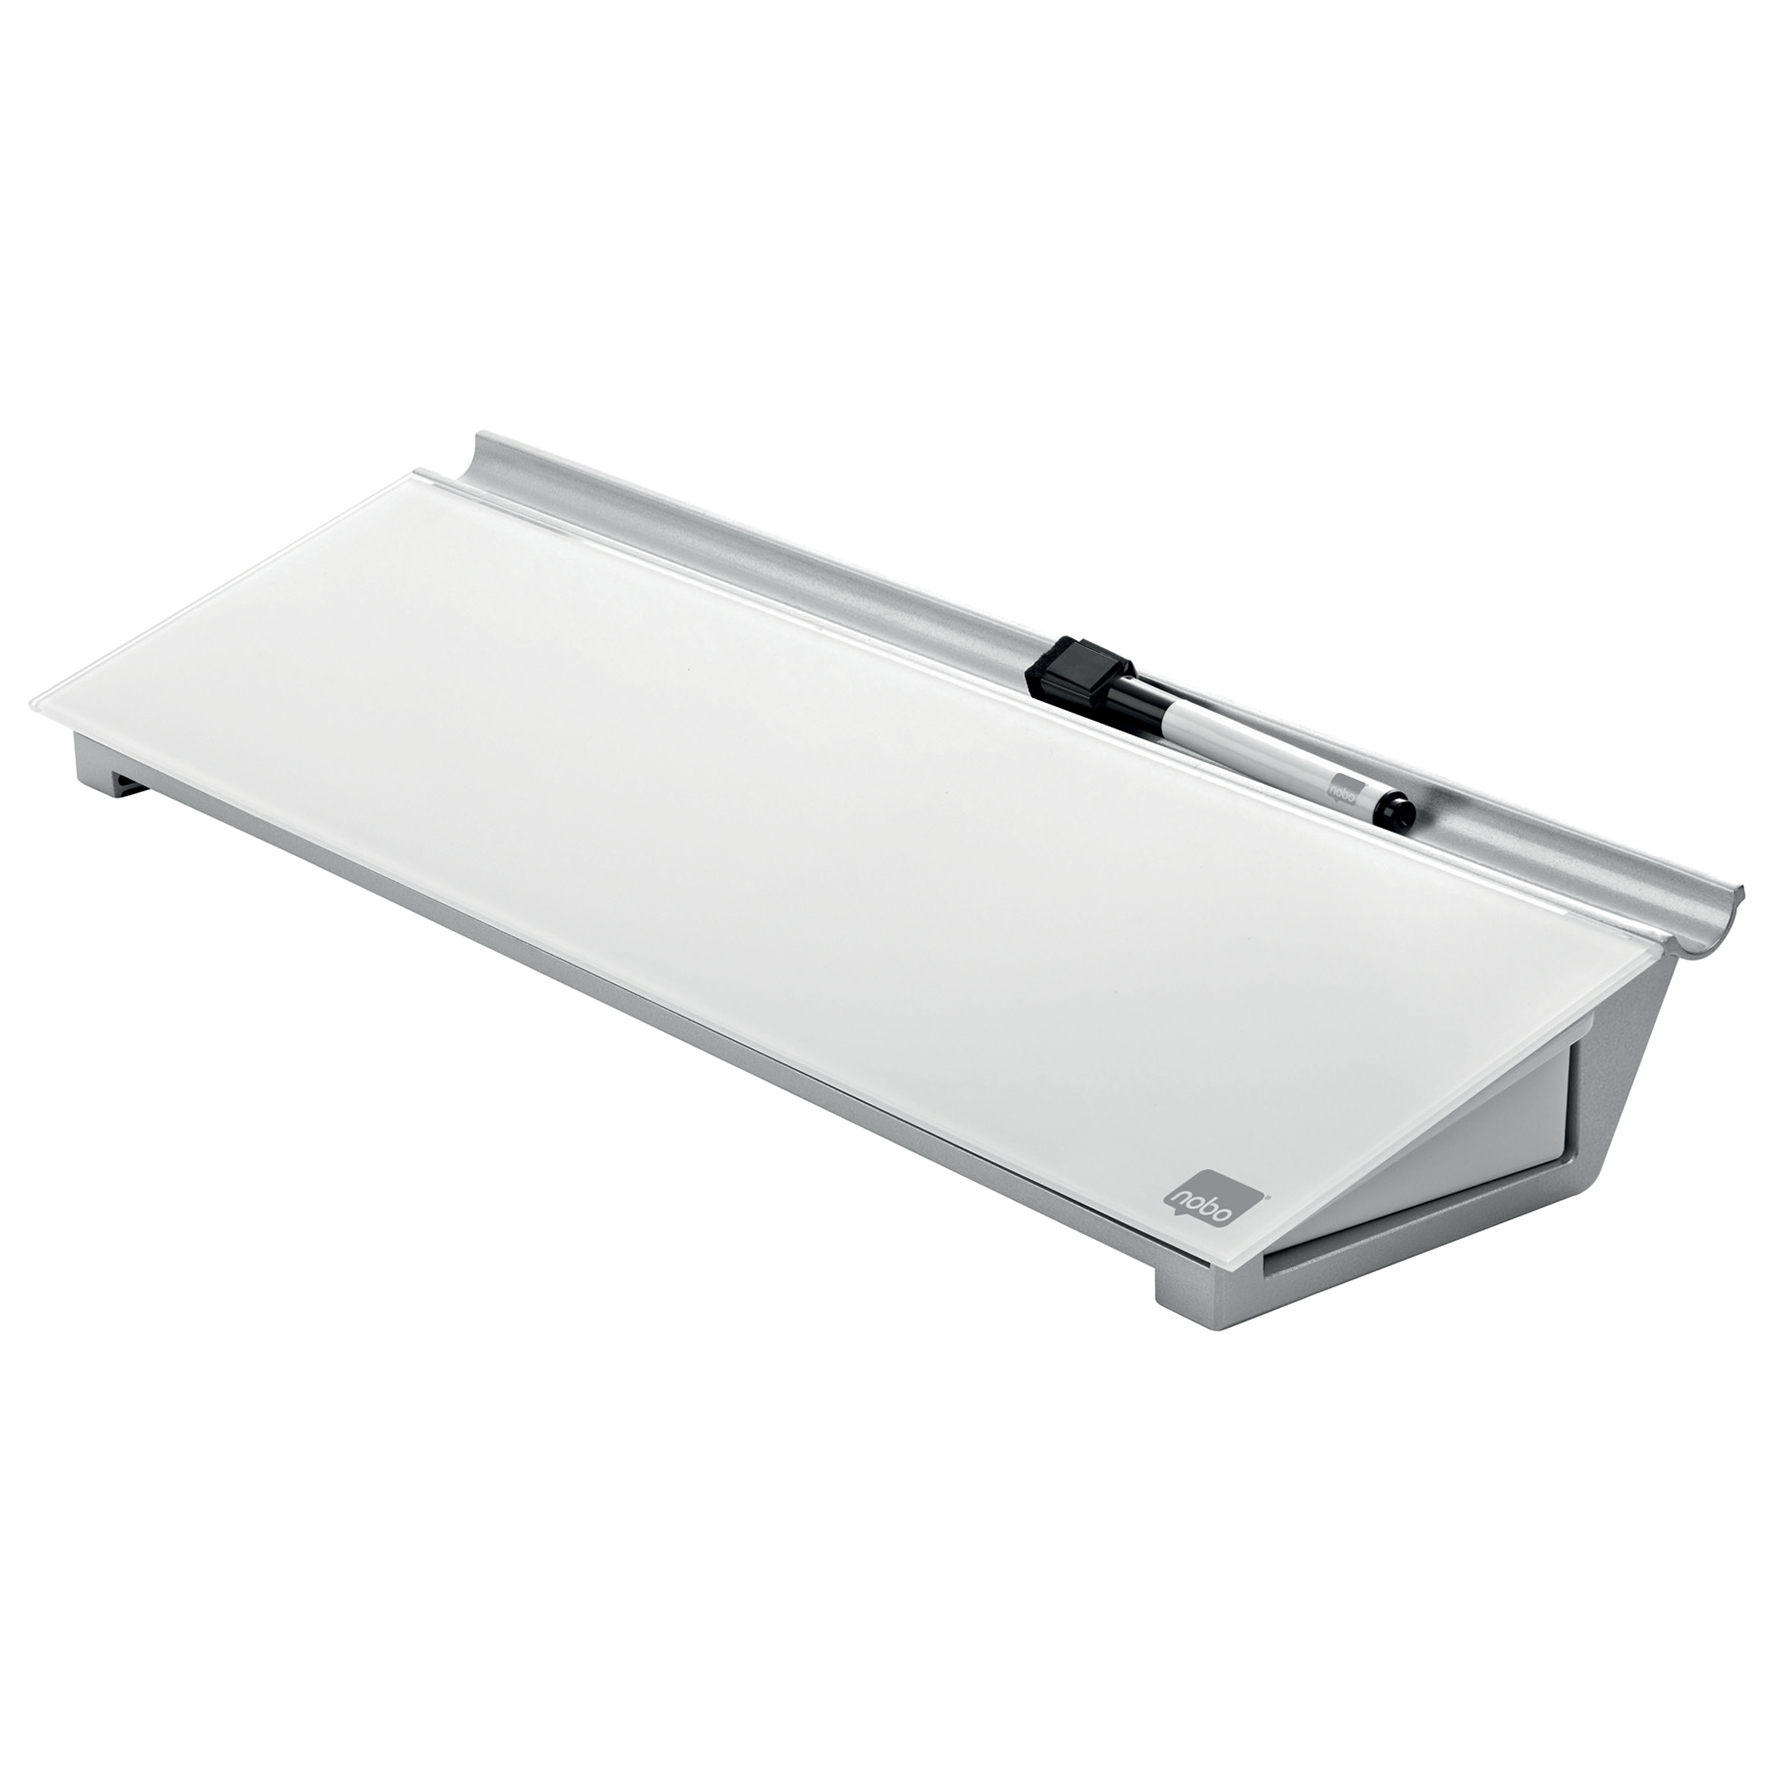 Dry erase boards or accessories Nobo Diamond Glass Personal Desktop Pad Ref 1905174